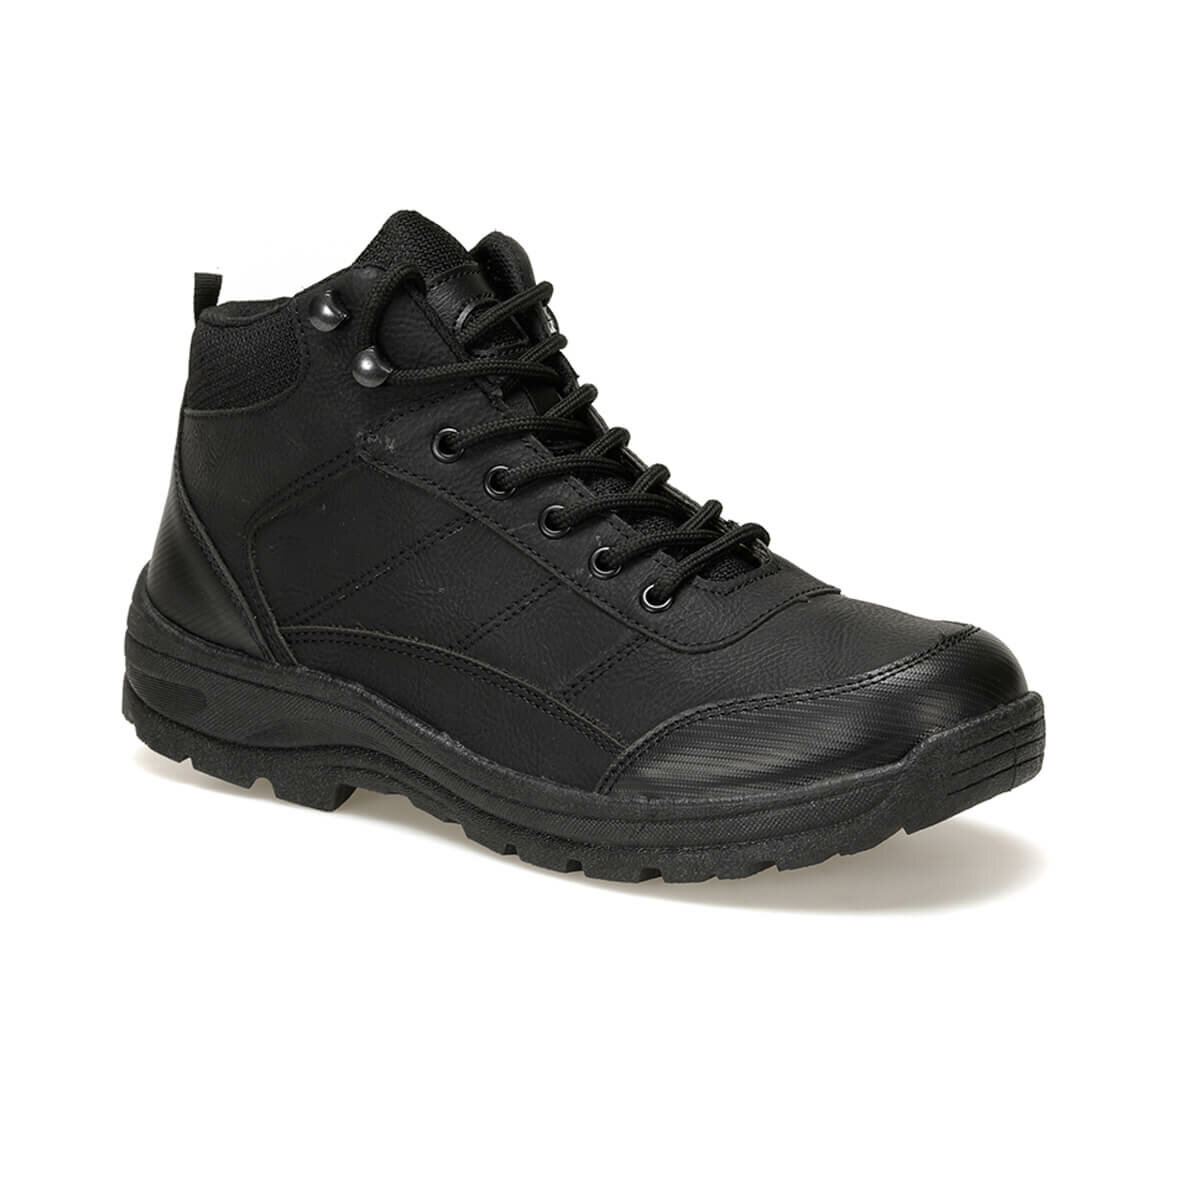 FLO EU-07 Black Men Boots Panama Club